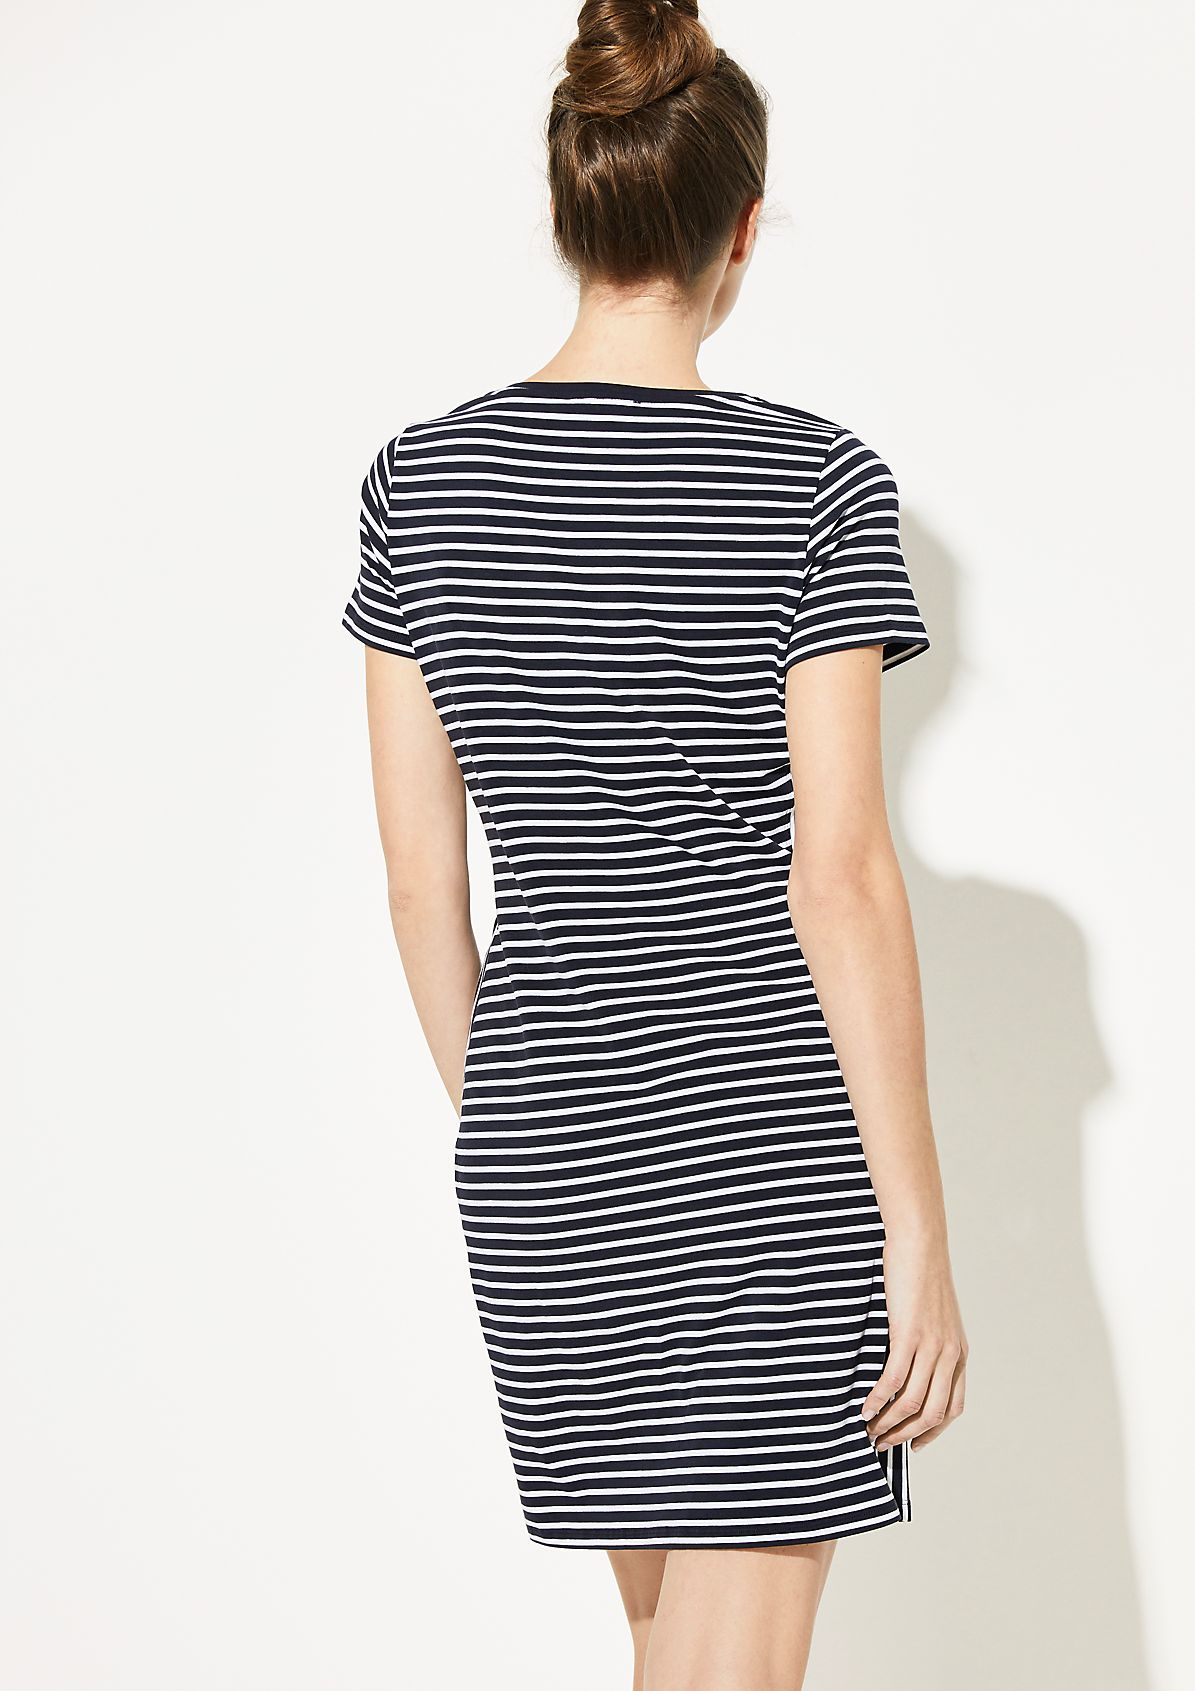 Casual shift dress made of jersey with a striped pattern from comma